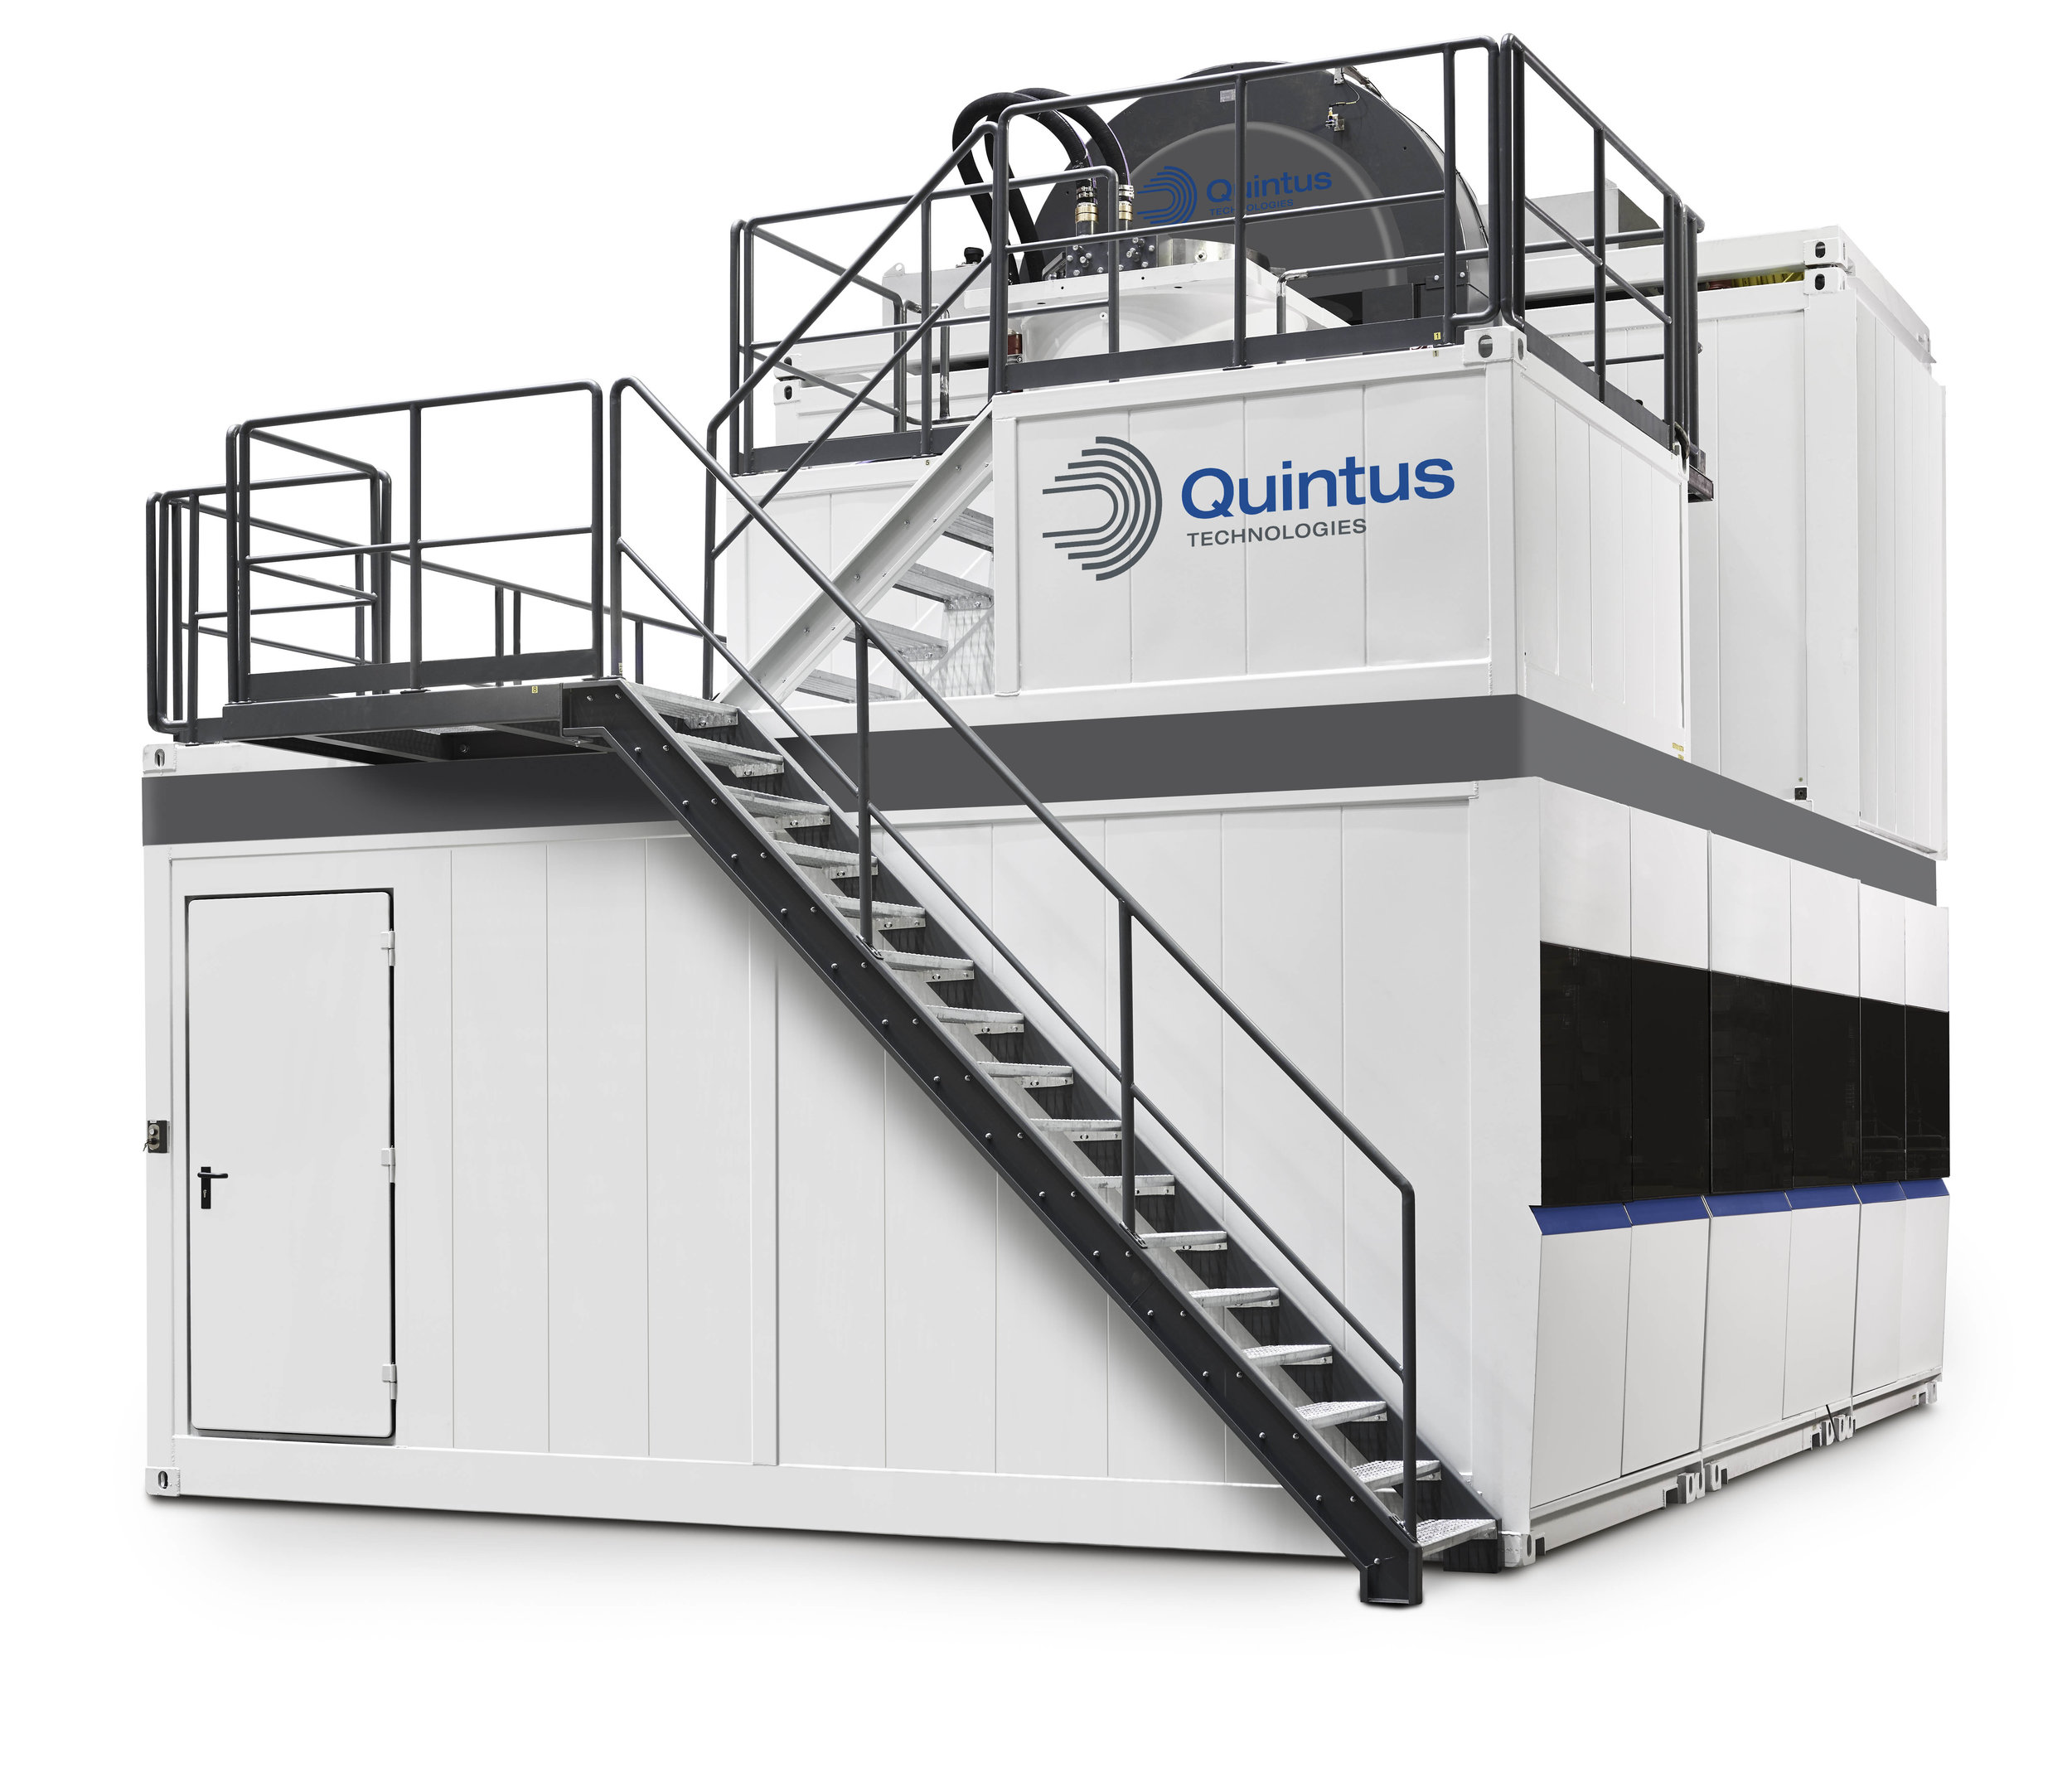 The press, model QIH 122 M URC®, is equipped with  Quintus'  proprietary uniform rapid cooling (URC), a feature that improves material properties of parts designed for mission-critical applications, increasingly produced in the vibrant additive manufacturing (AM) environment.